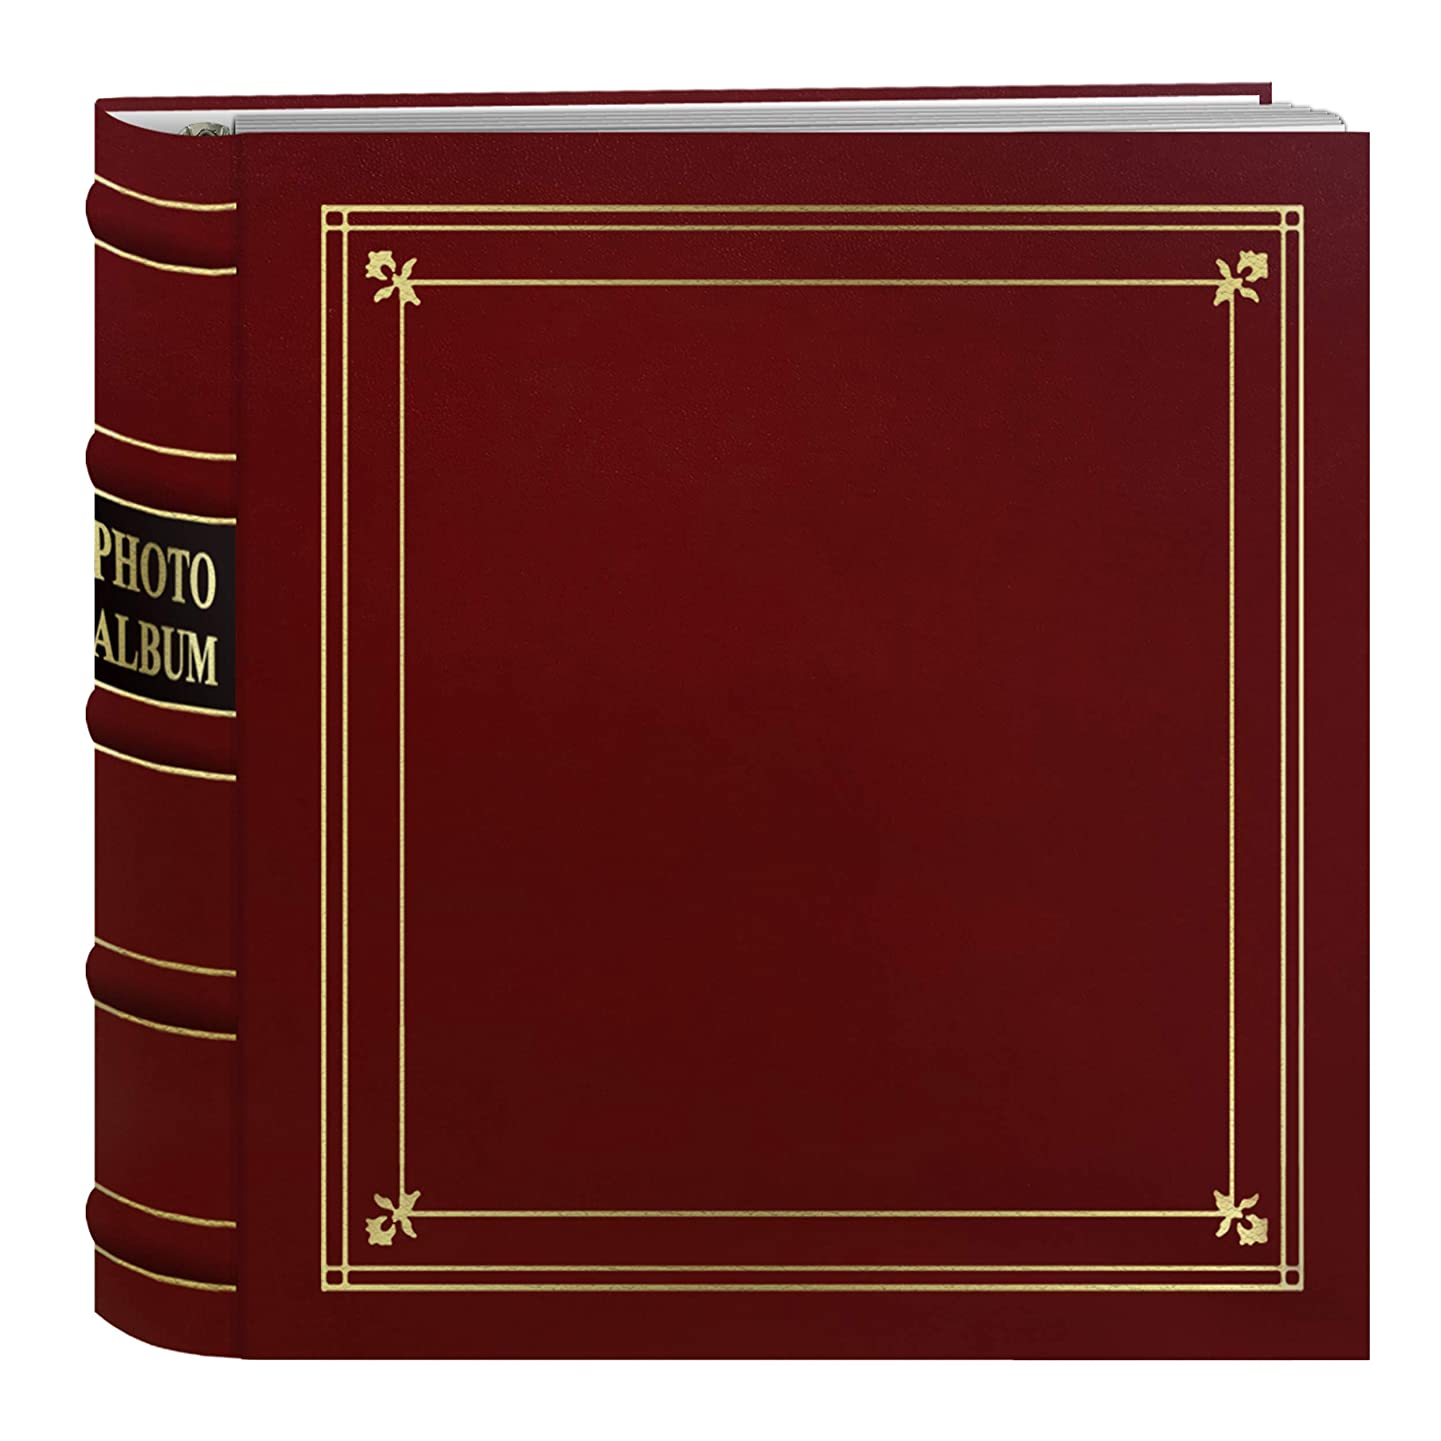 Pioneer Photo Albums 200-Pocket Ring Bound Red Bonded Leather with Gold Accents Cover Photo Album for 4 x 6-Inch Prints